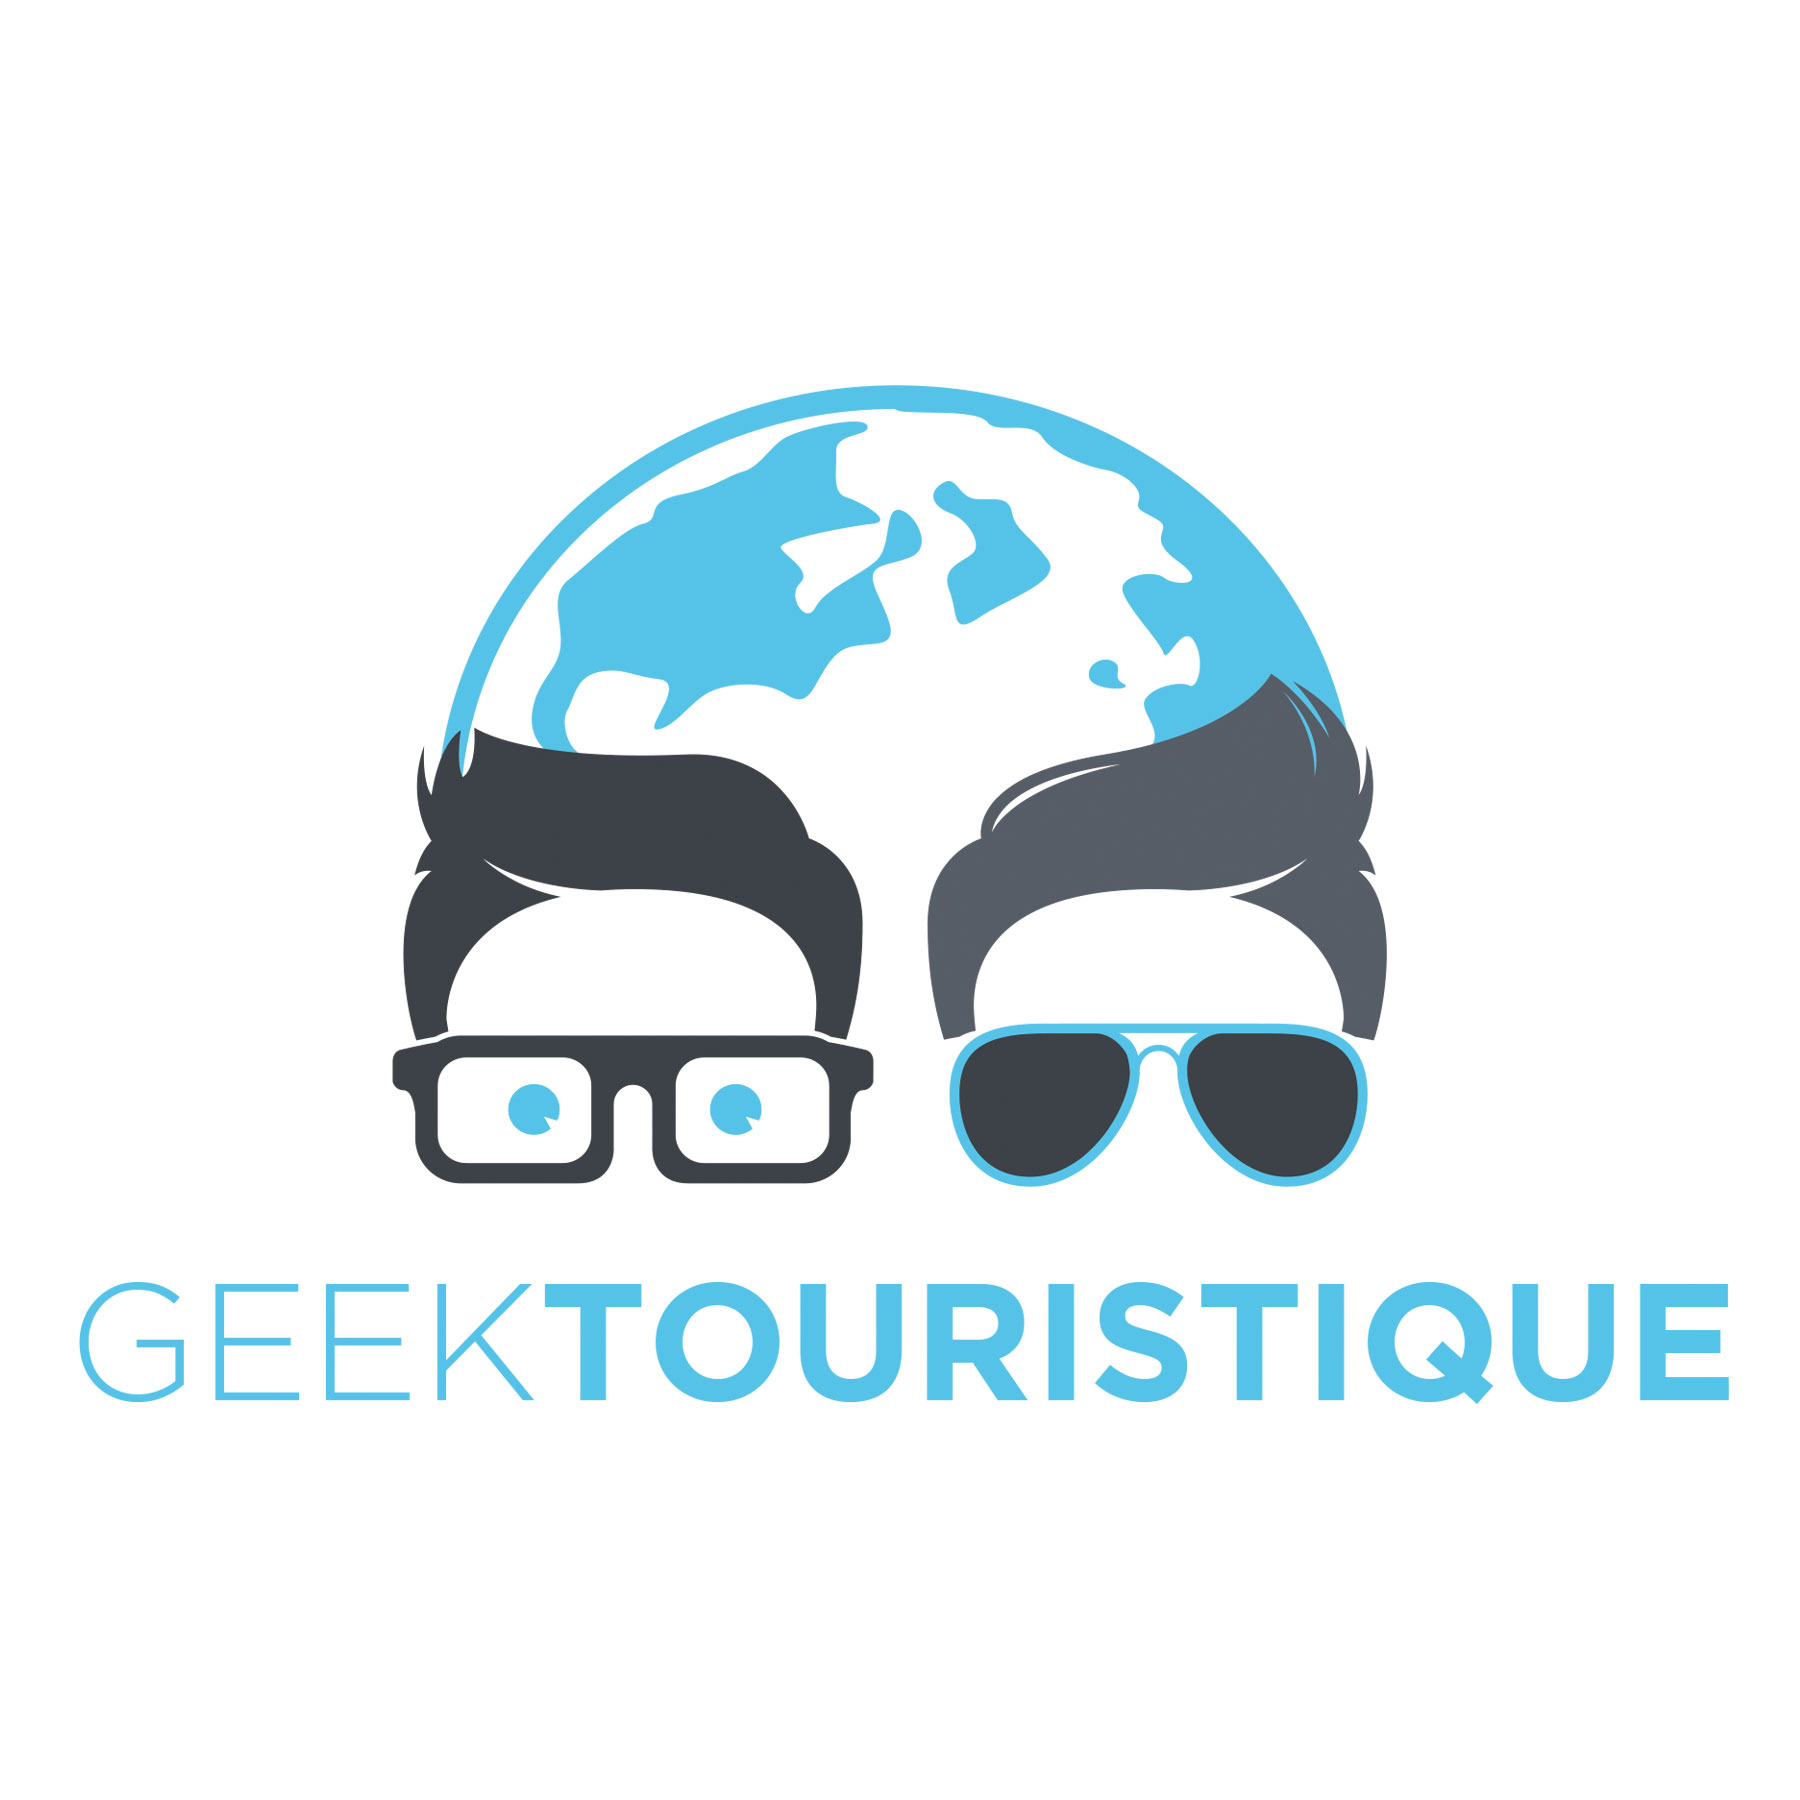 GeekTouristique